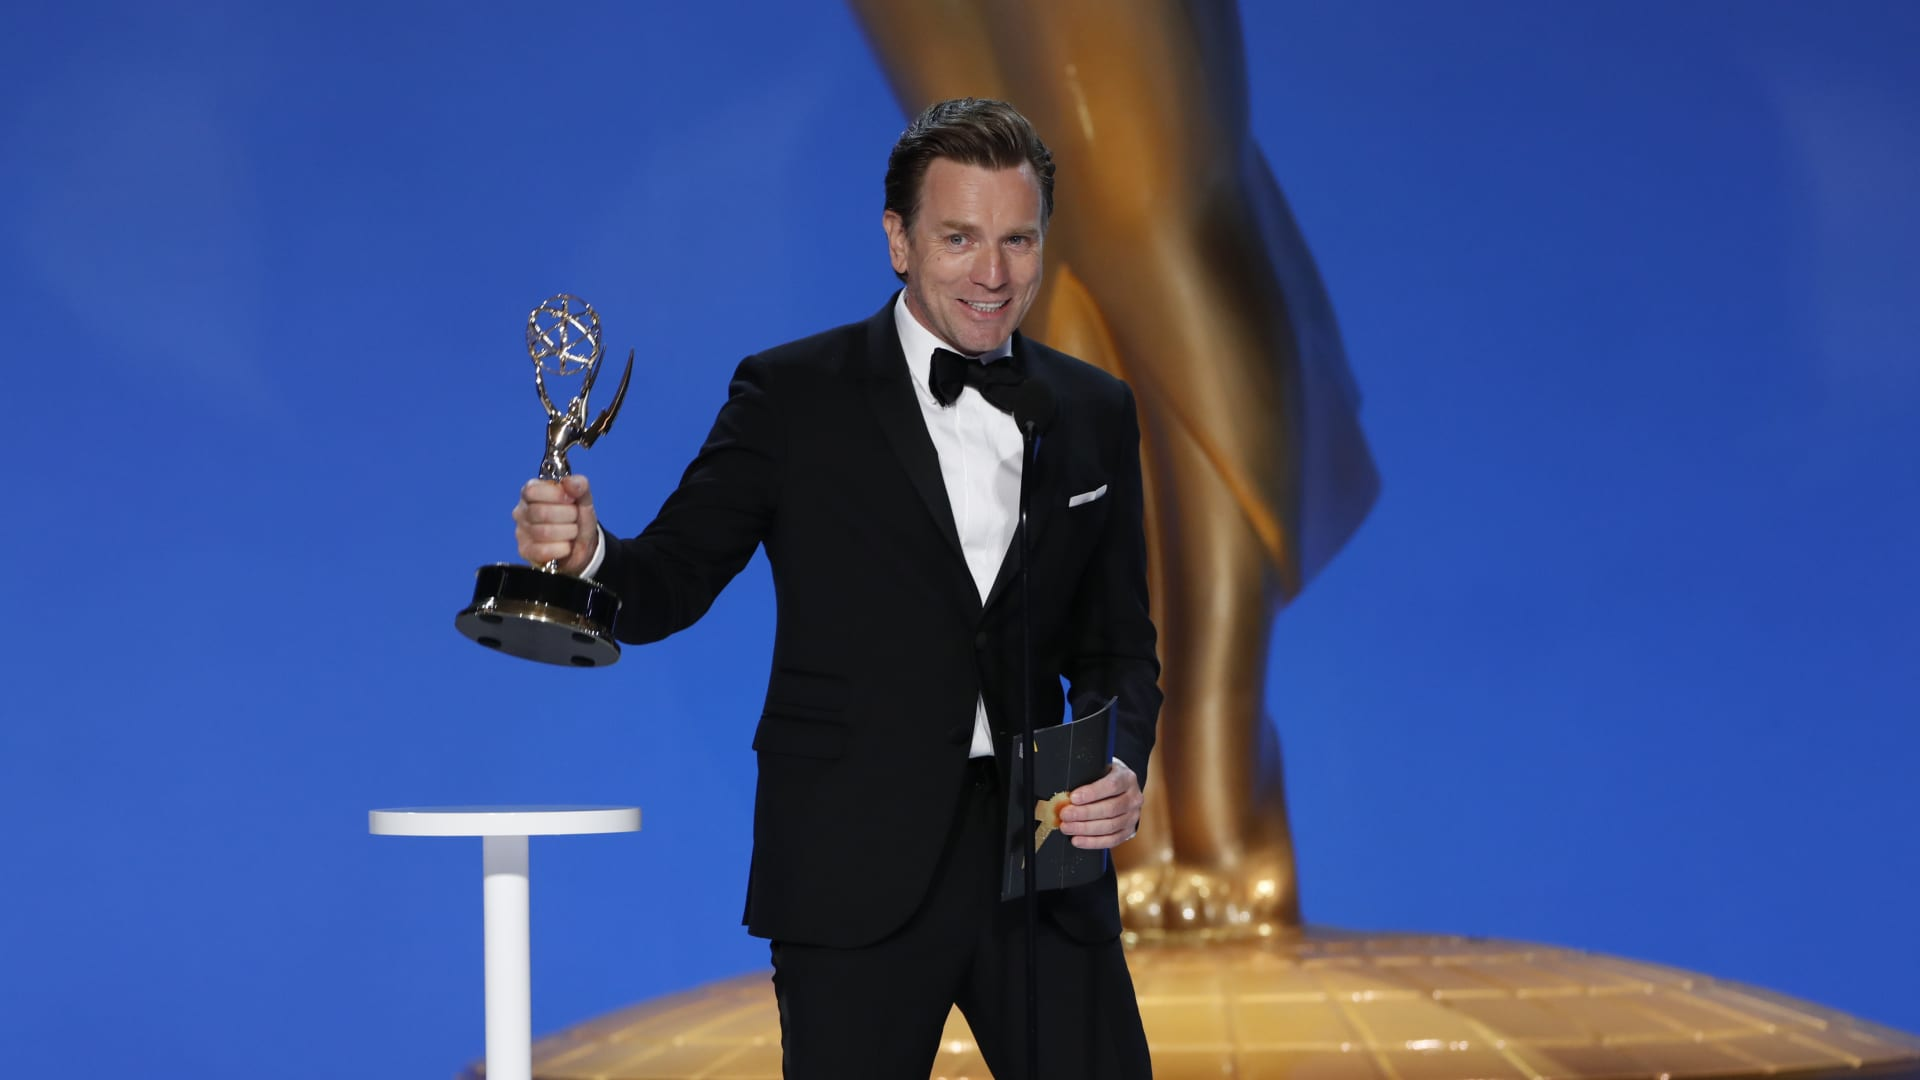 Ewan McGregor from 'Halston' appears at the 73RD EMMY AWARDS, broadcast Sunday, Sept. 19.